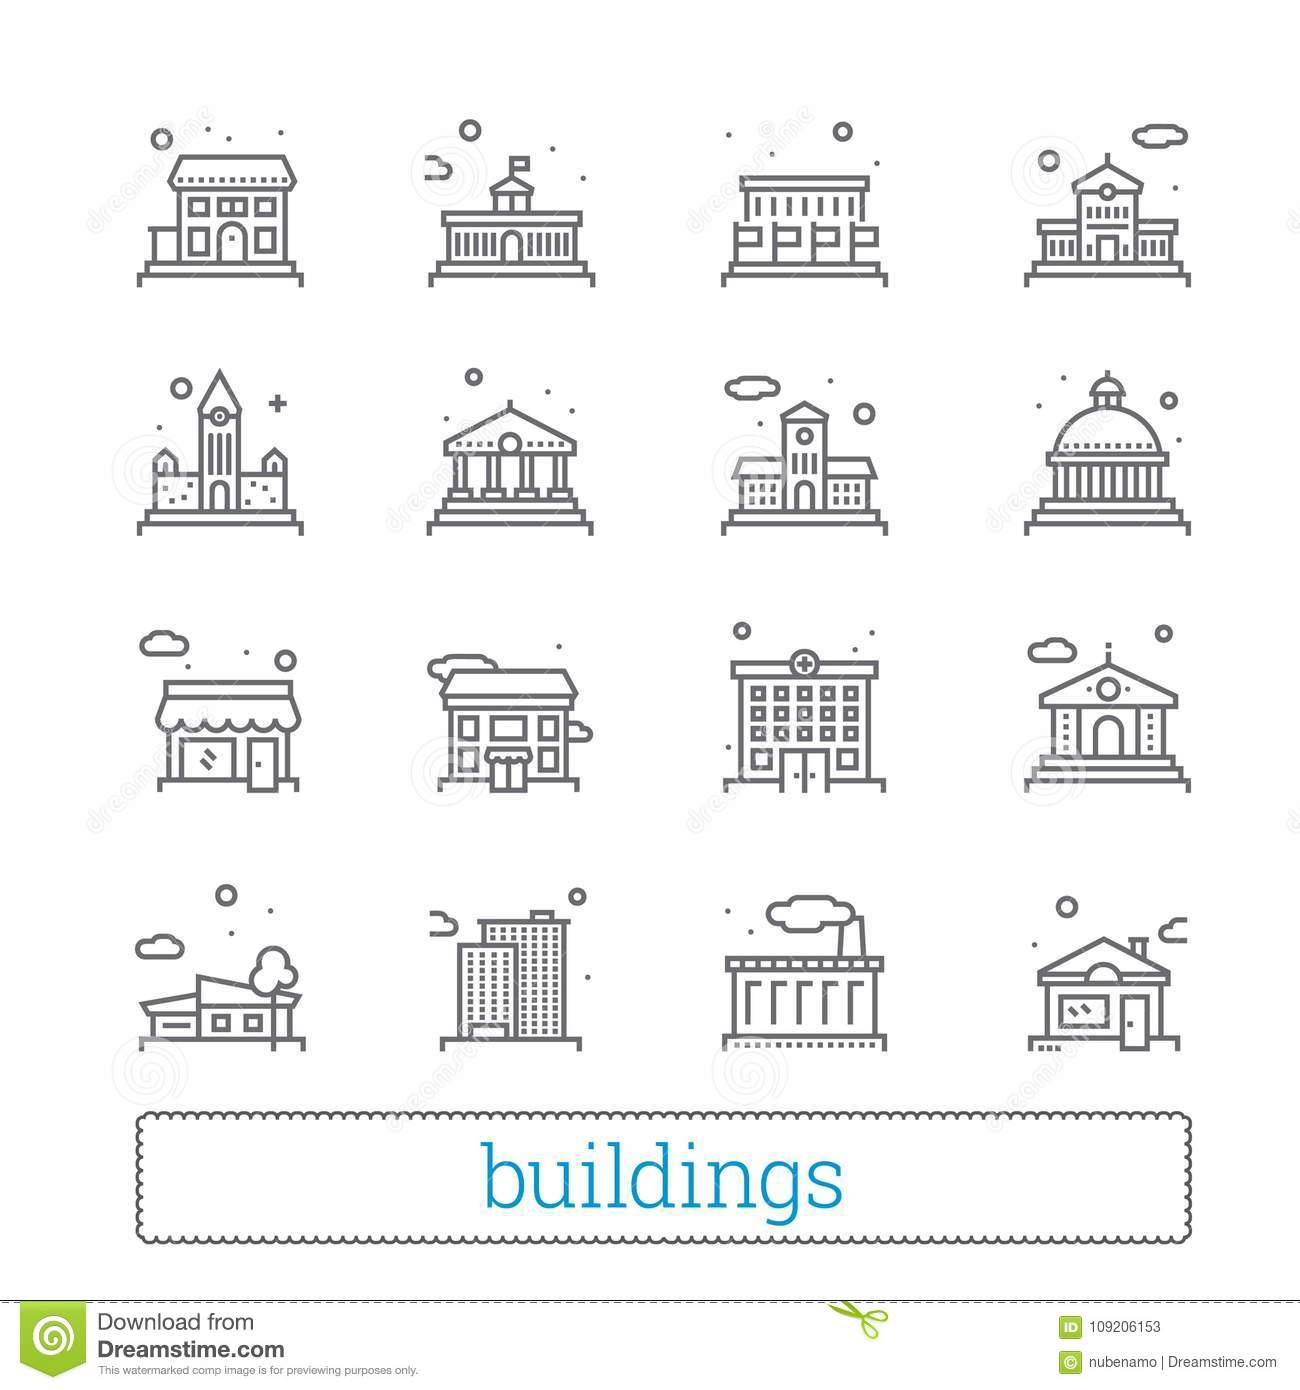 Building thin line icons. Public, government, education and personal houses. Modern linear vector design elements.